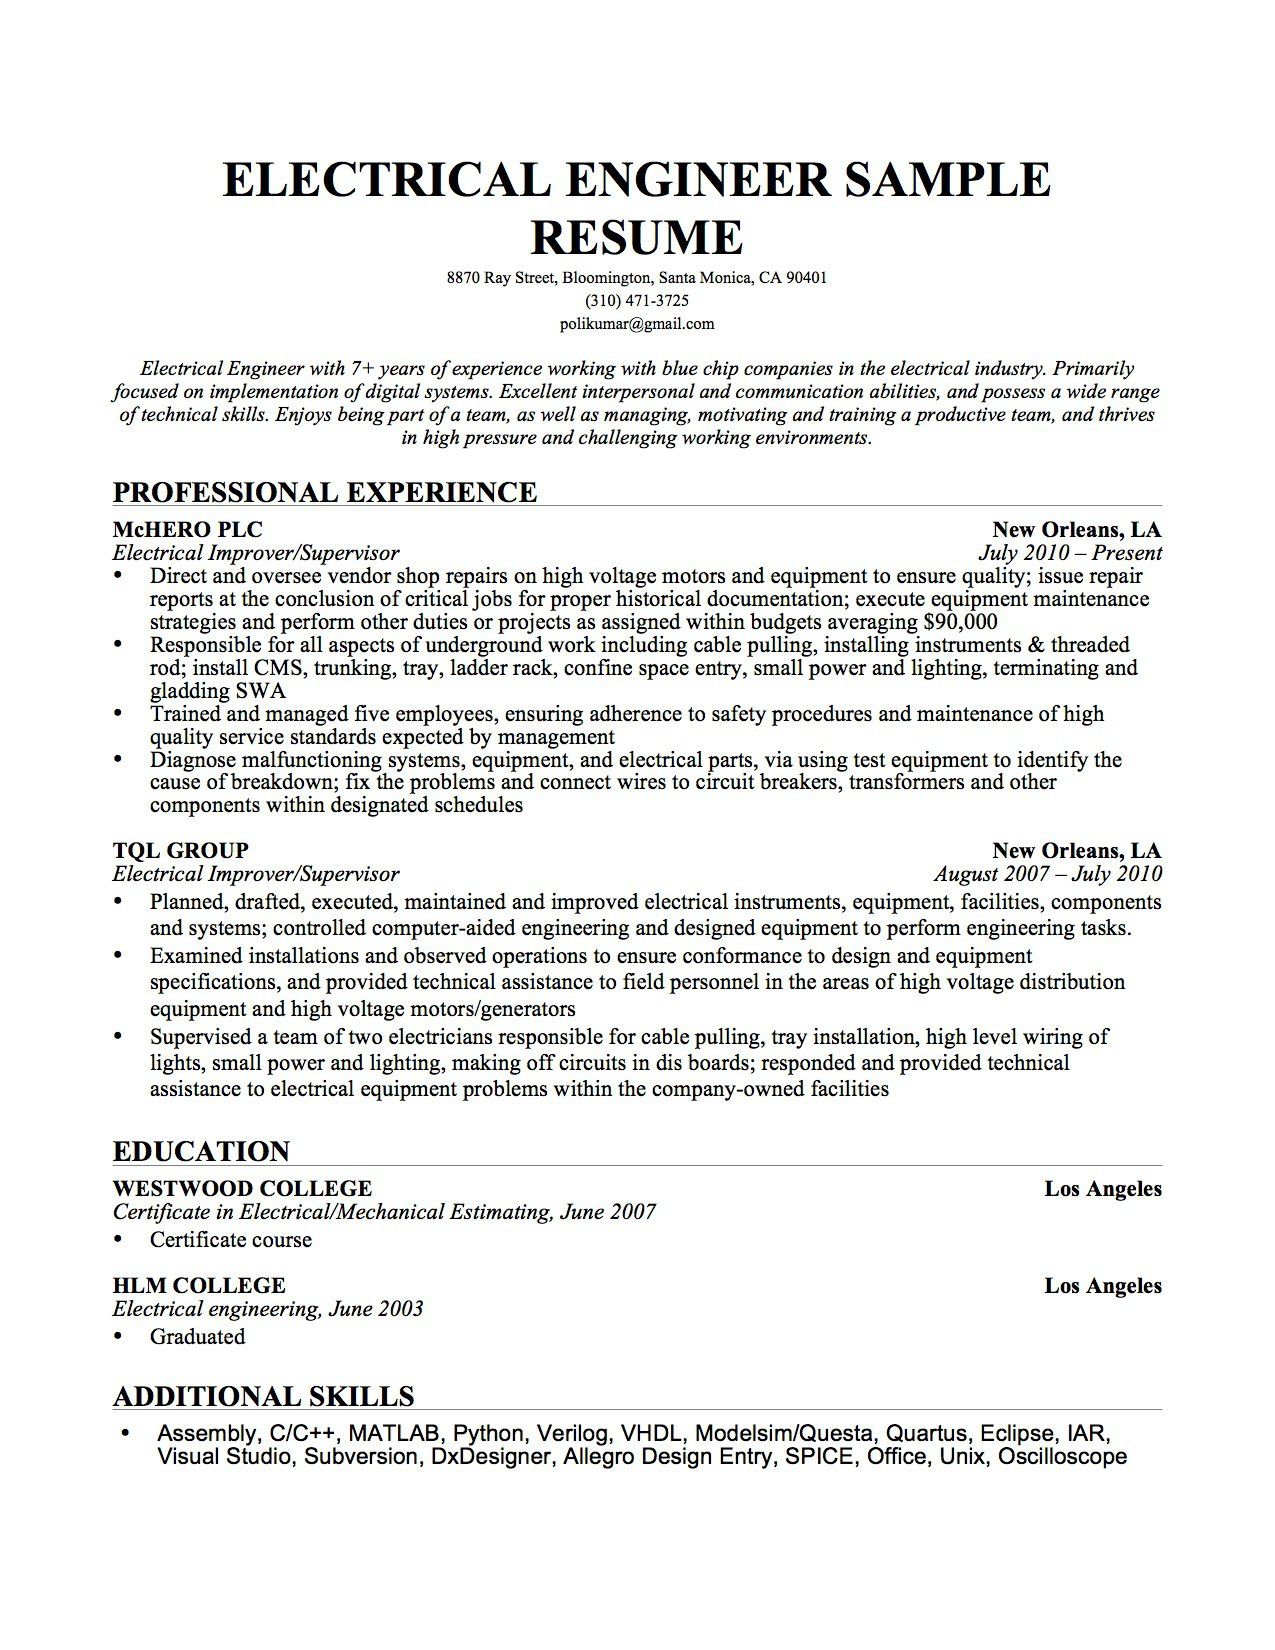 Example Of A Professional Resume Engineer Sample Resume Equipment Fixed Biomedical Technician Cover